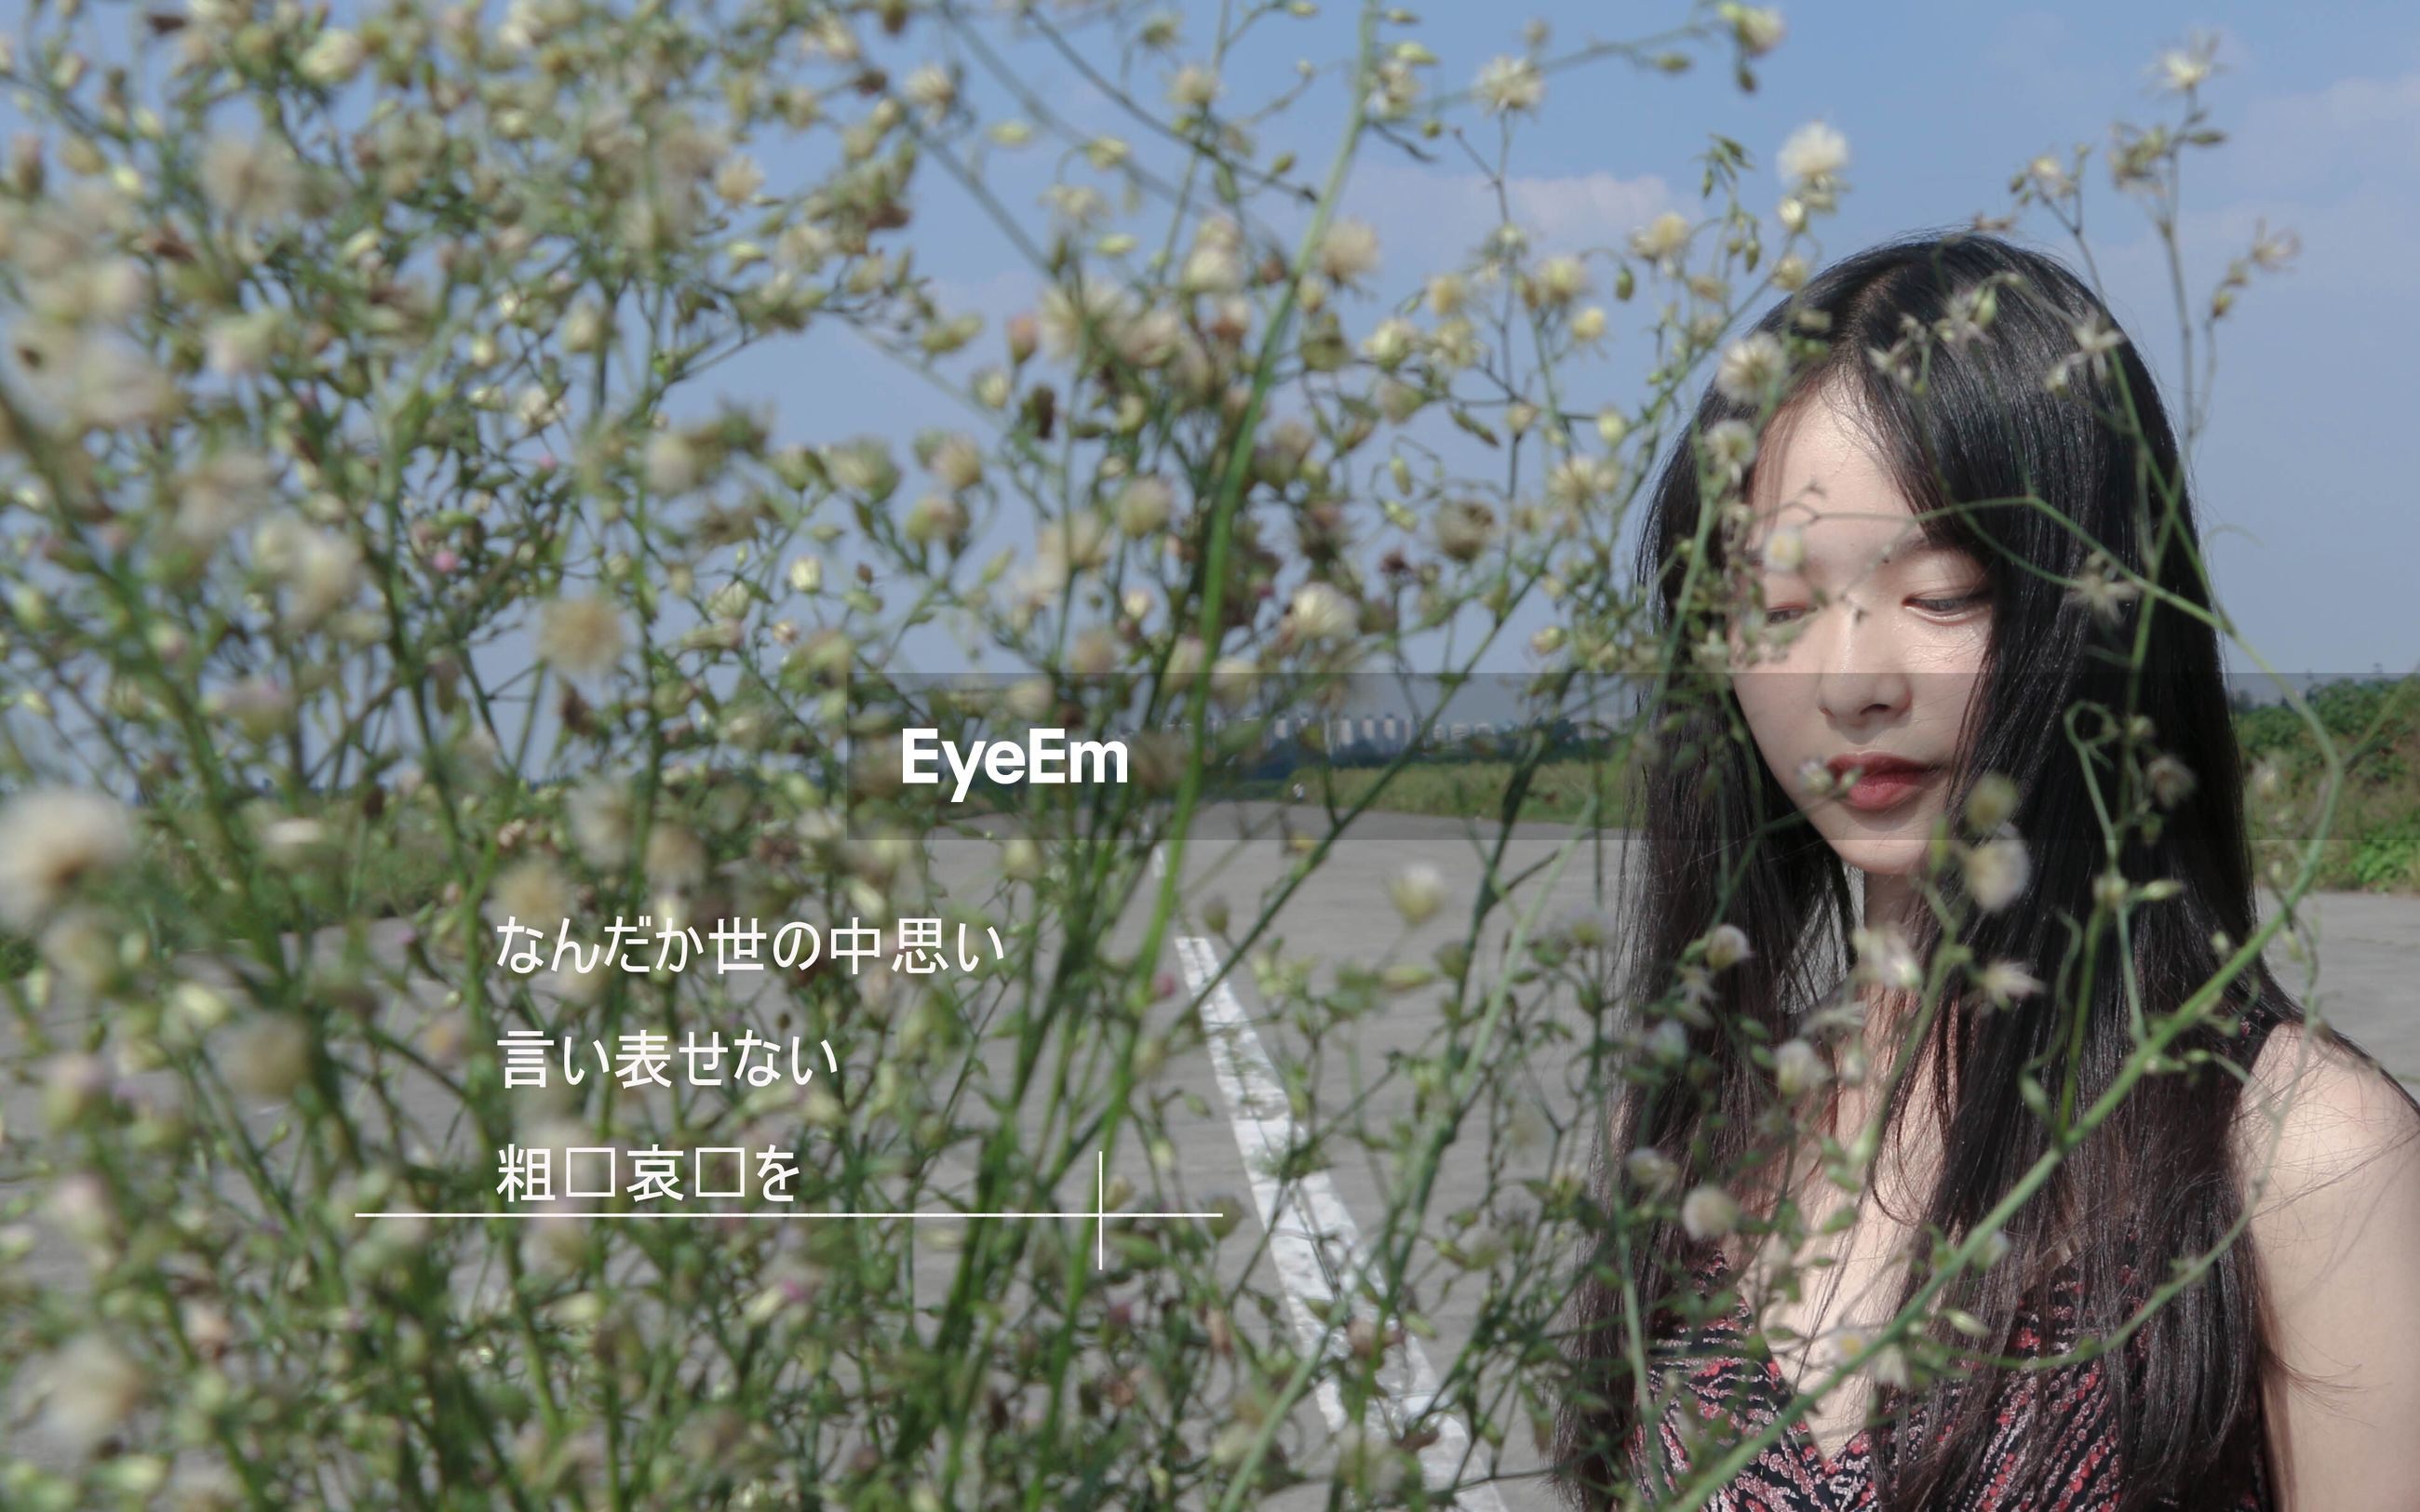 flower, focus on foreground, person, leisure activity, lifestyles, young adult, sunglasses, young women, looking at camera, growth, nature, casual clothing, front view, beauty in nature, plant, field, day, freshness, summer, fragility, sky